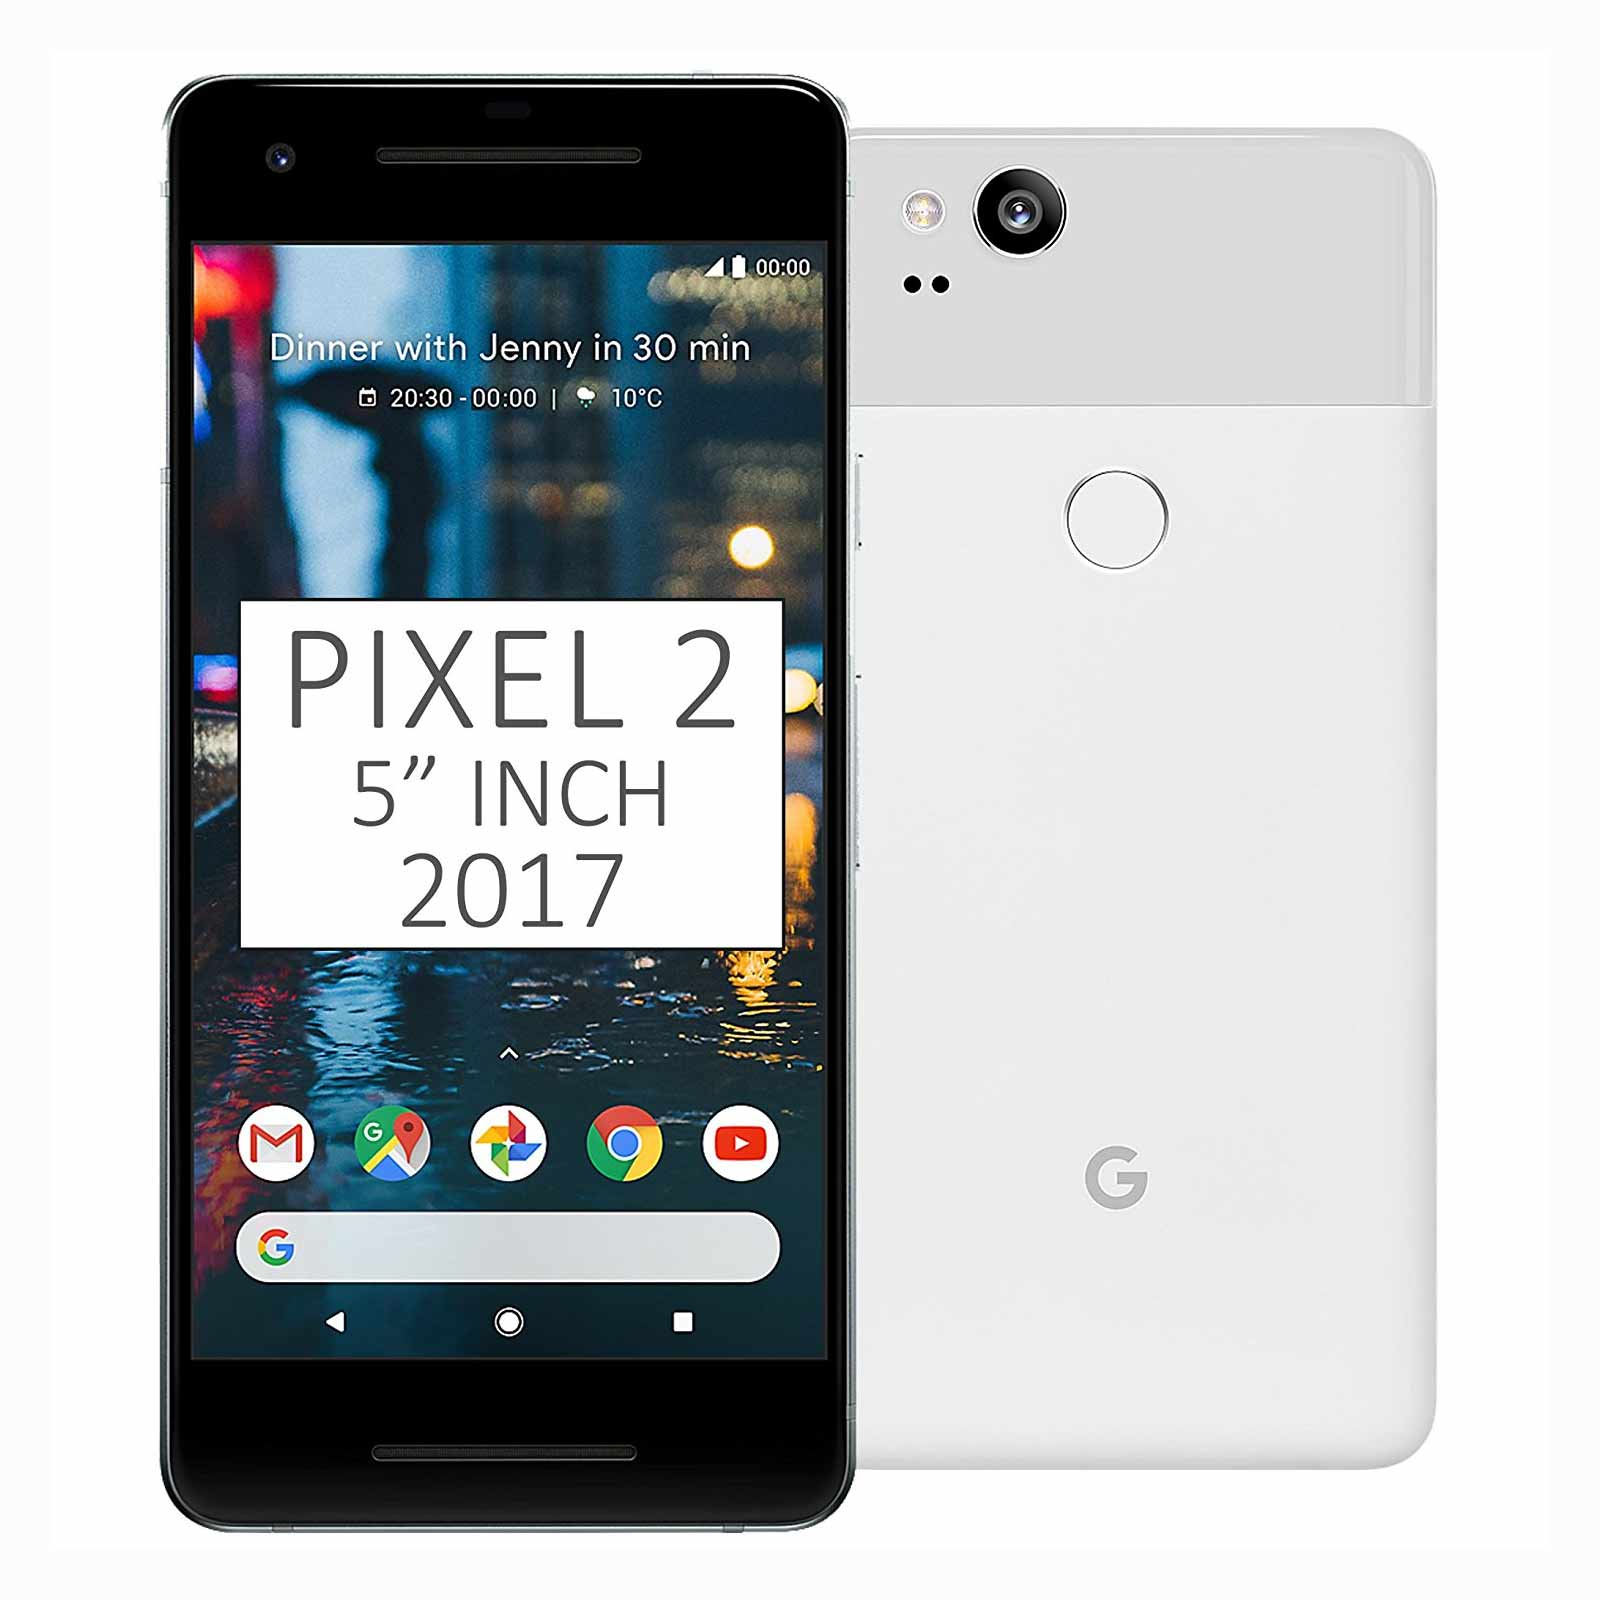 """New  Pixel 2 128GB GSM + CDMA Verizon 5"""" AMOLED Capacitive touchscreen 4GB RAM 12.2MP by Google Smartphone - Clearly White - USA Version"""